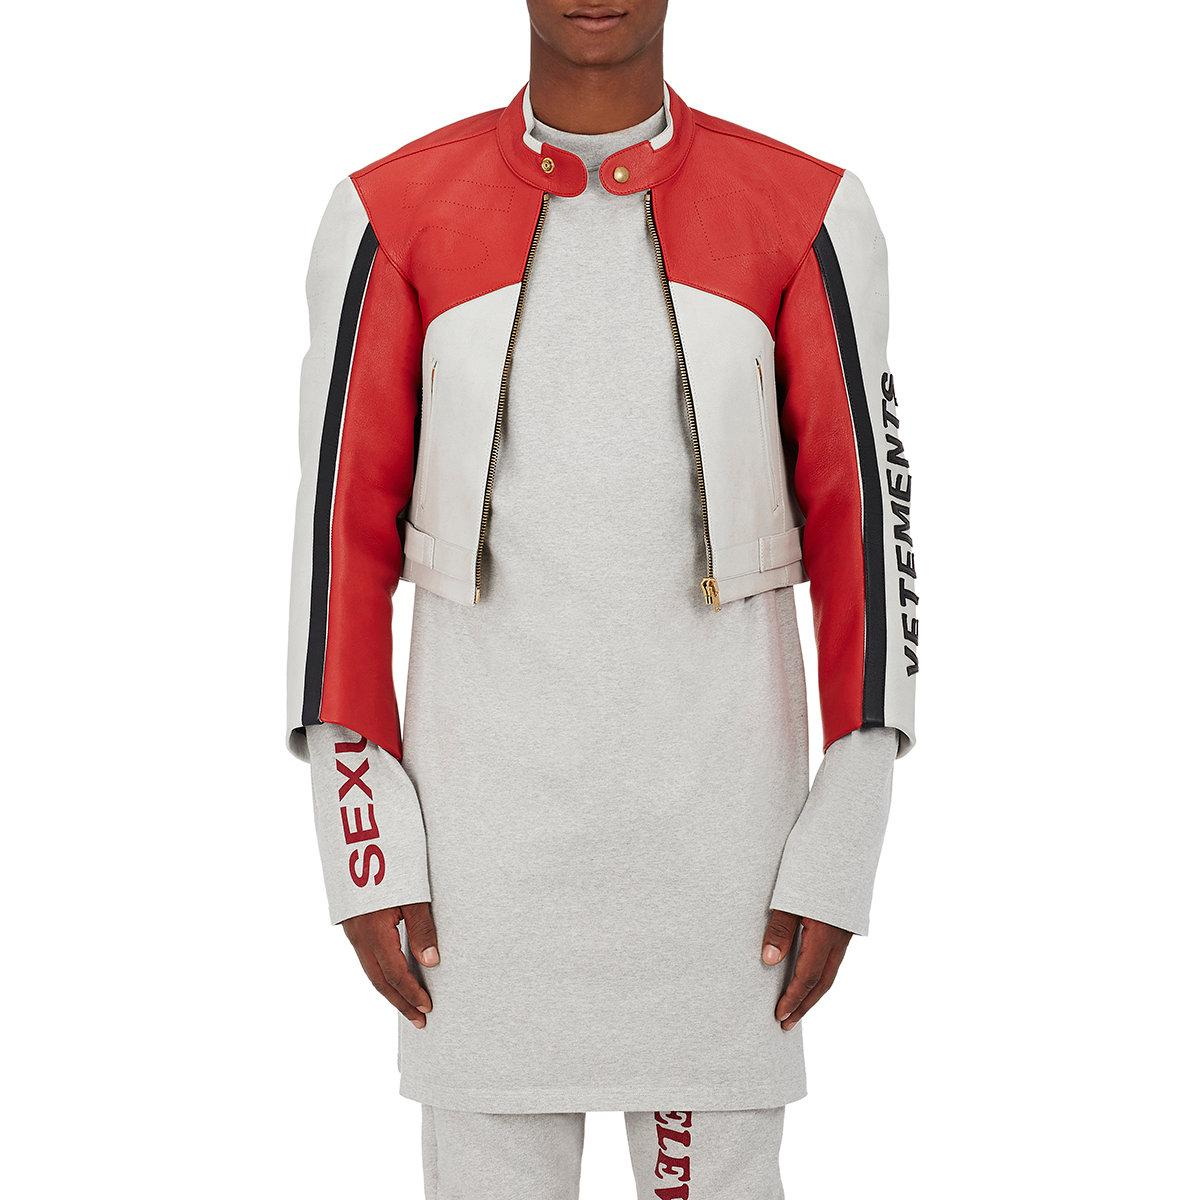 vetements perforated calfskin moto jacket in red for men lyst. Black Bedroom Furniture Sets. Home Design Ideas